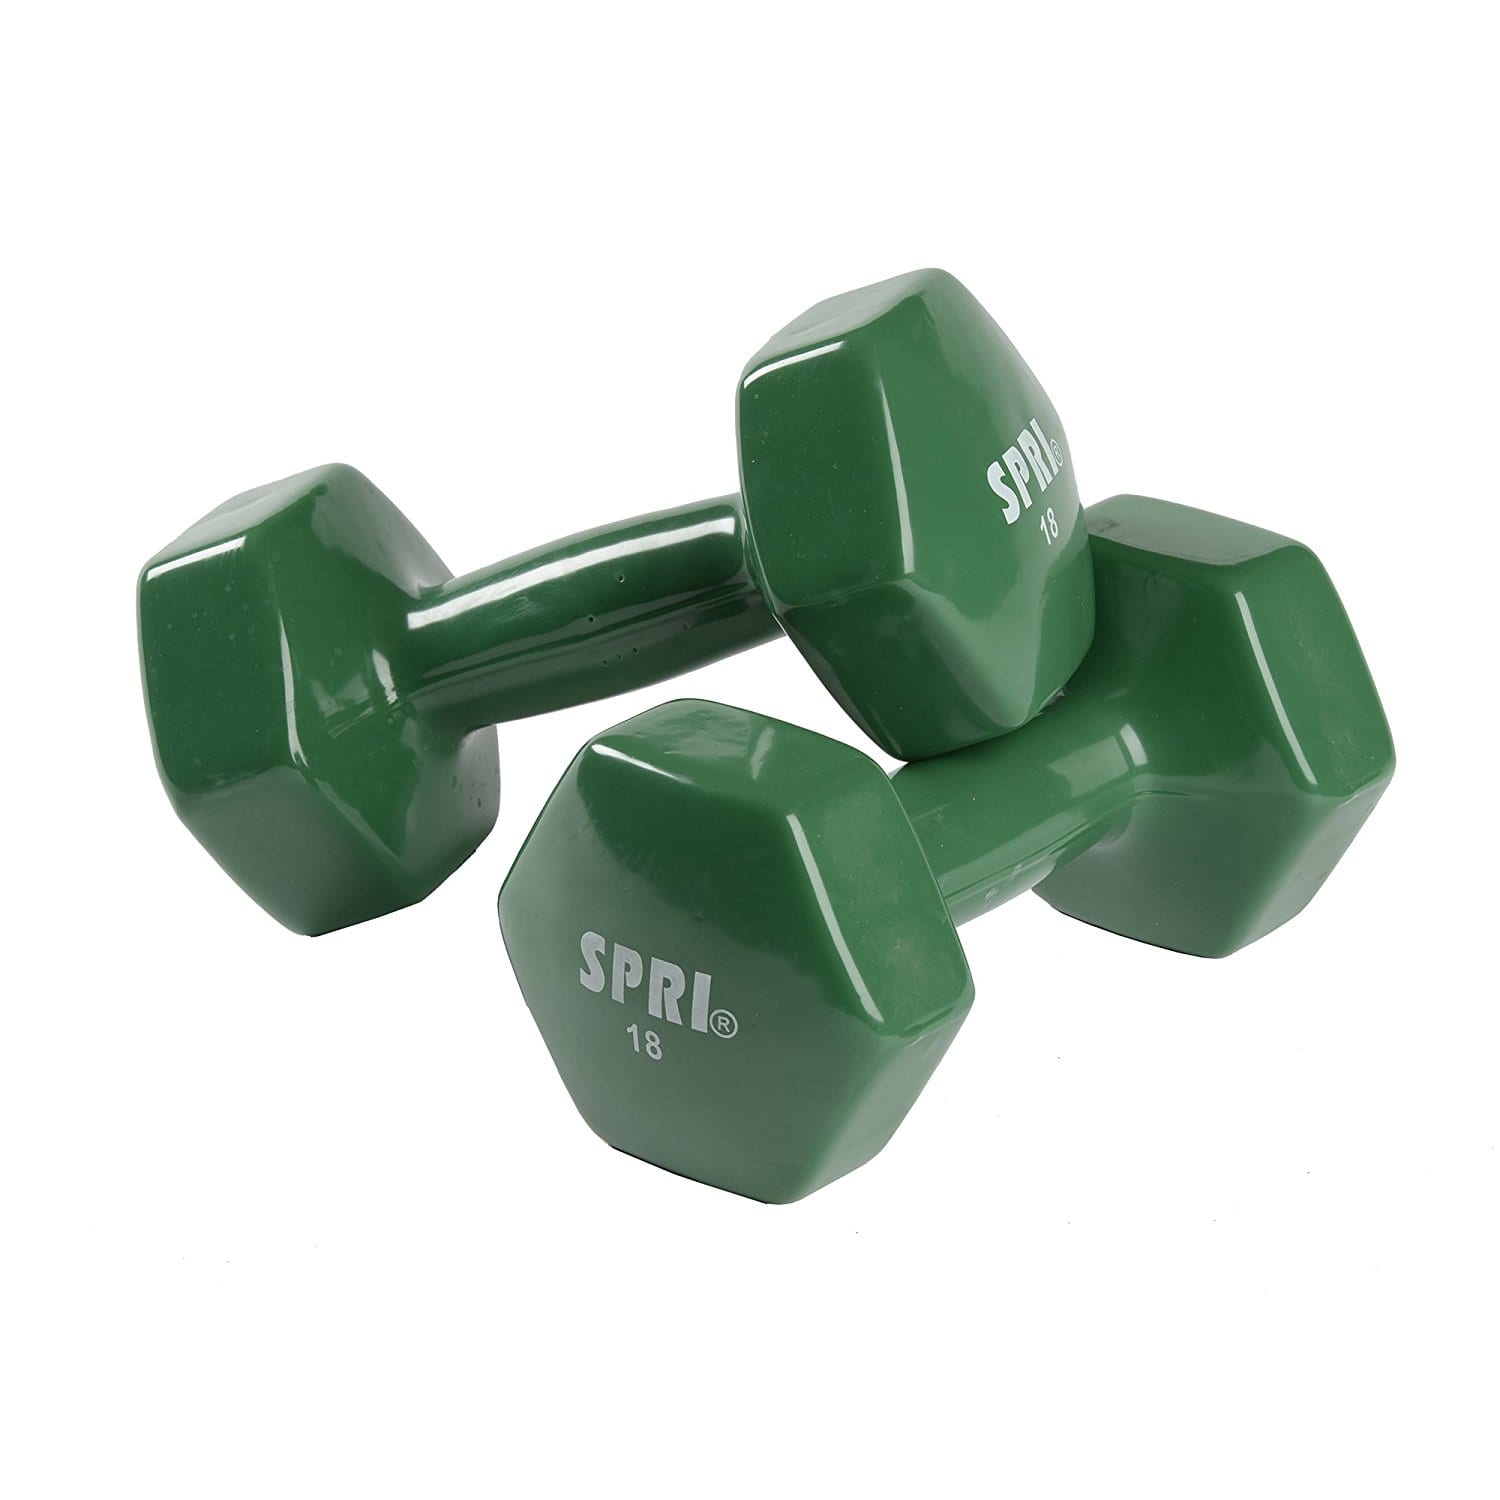 Deluxe Vinyl Dumbbells – 18lb Pair -forest Green